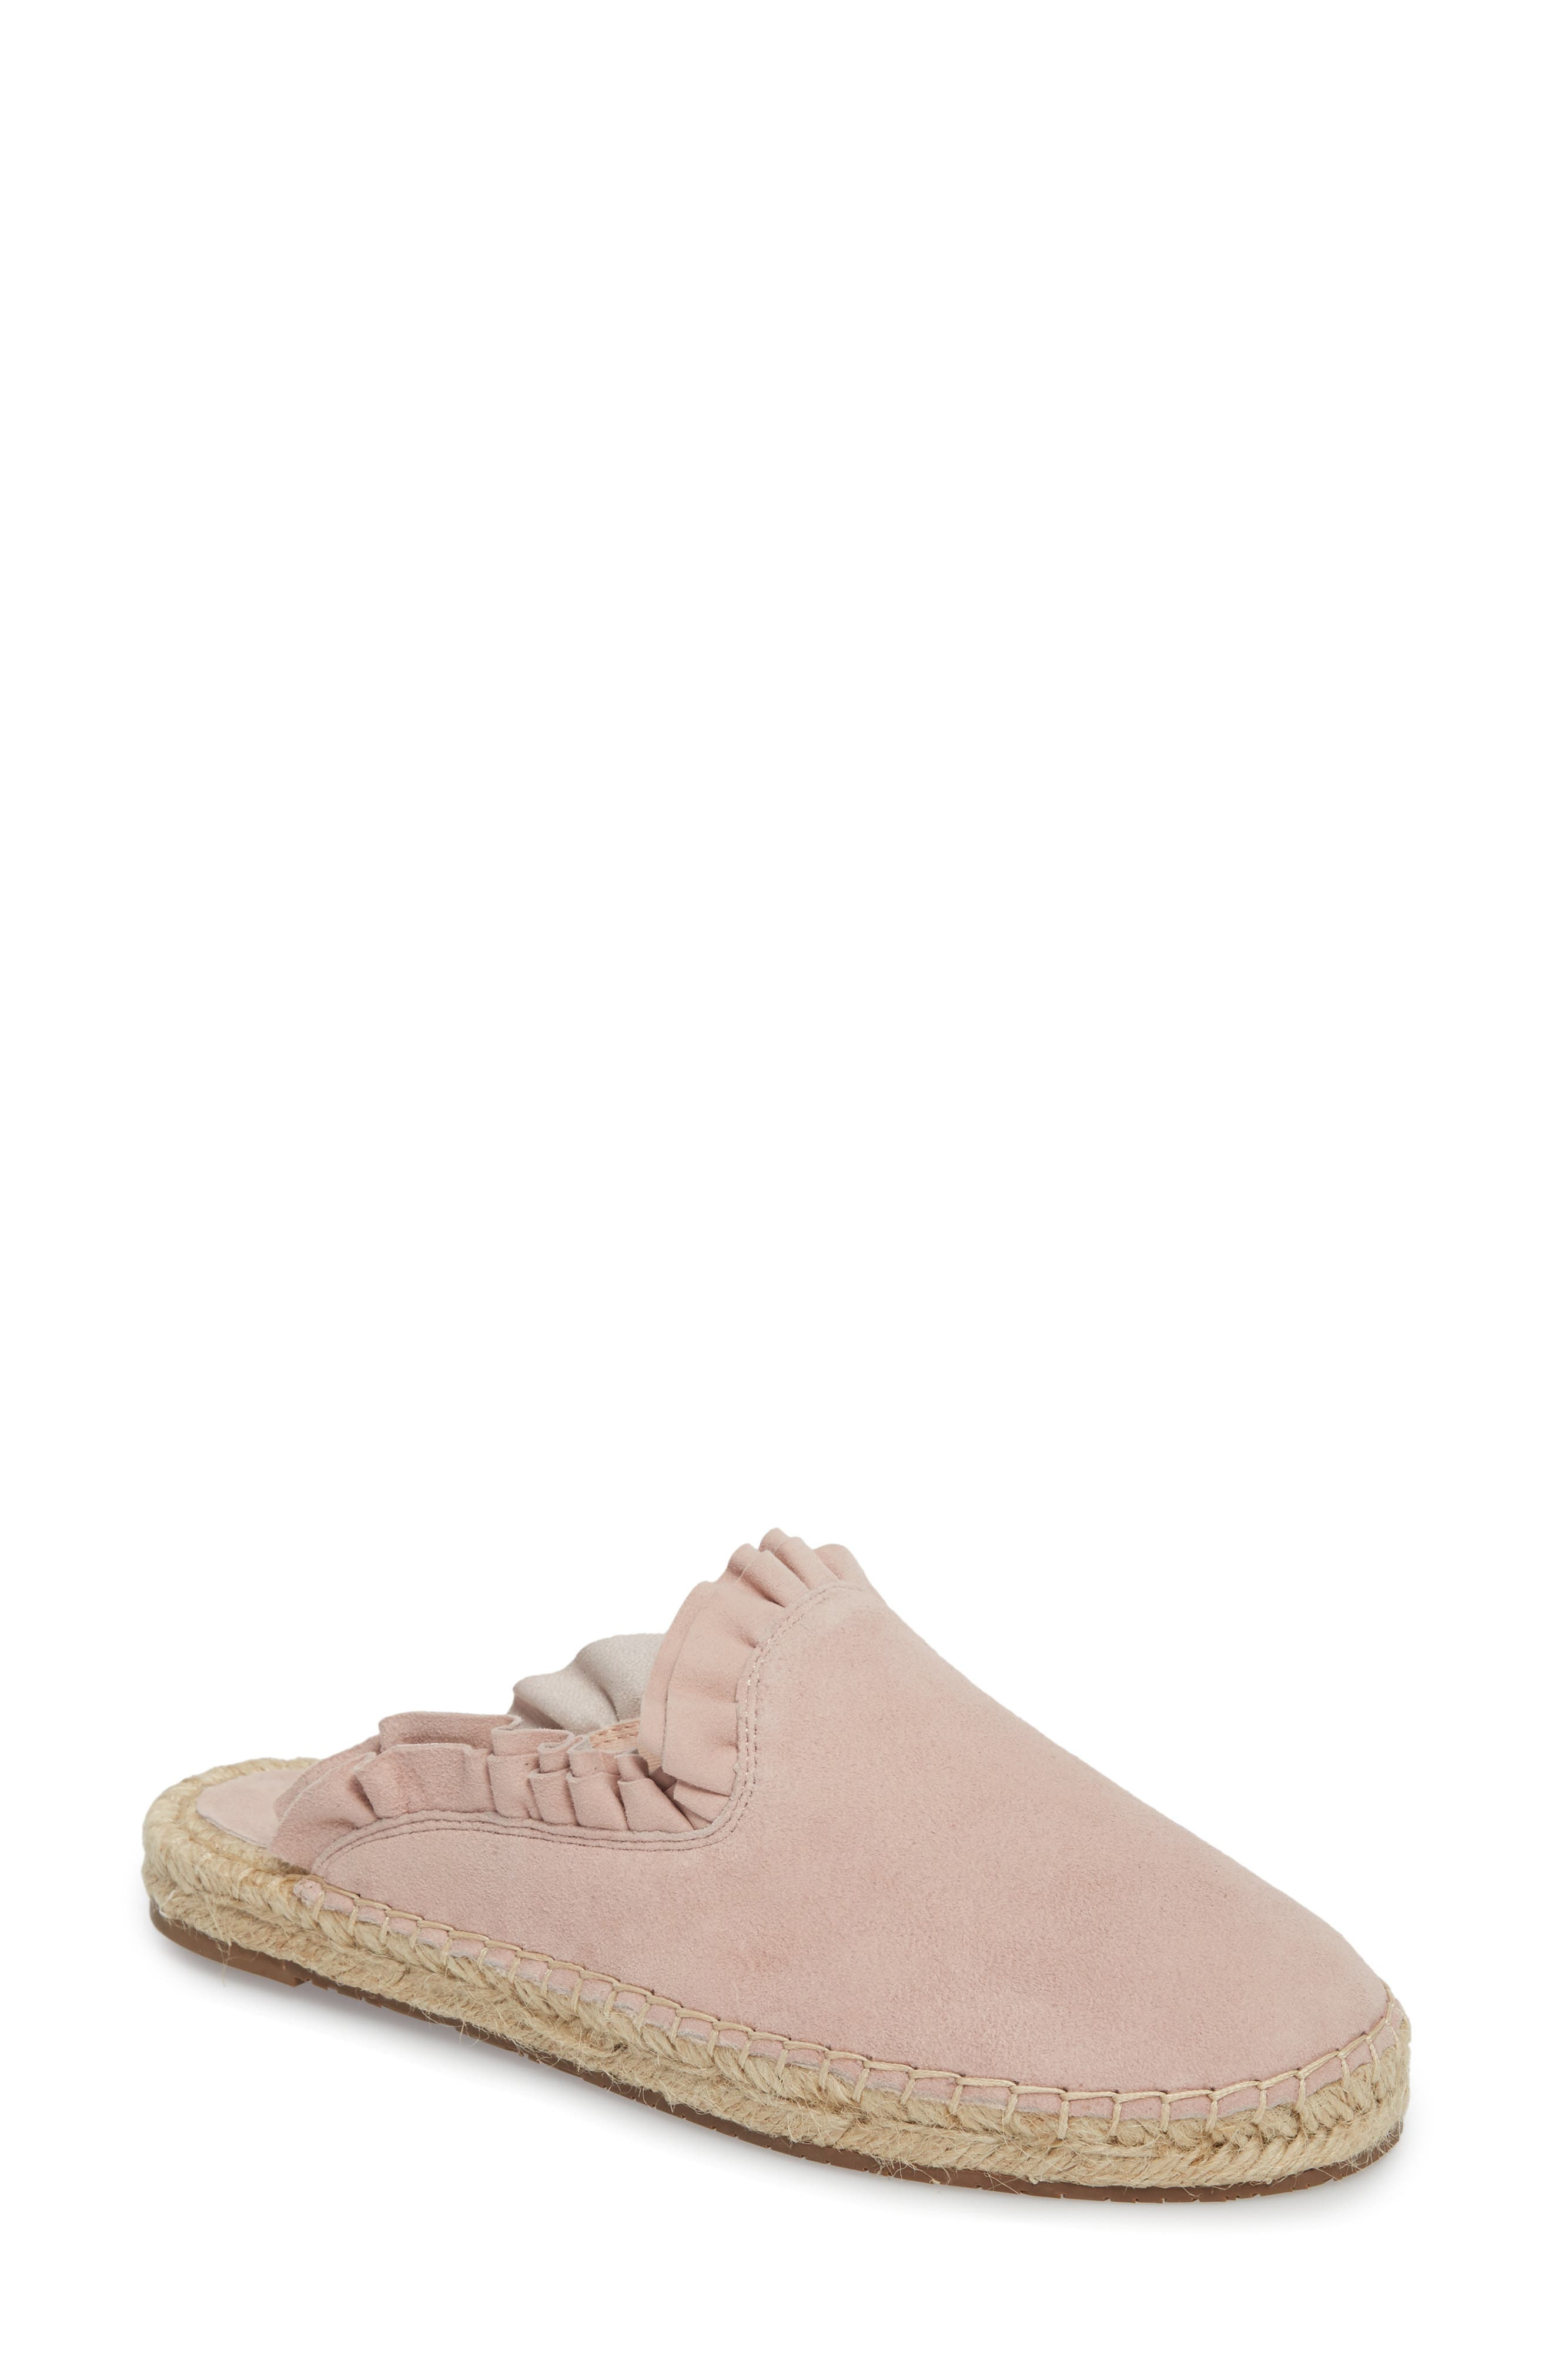 kate spade new york laila espadrille mule (Women)